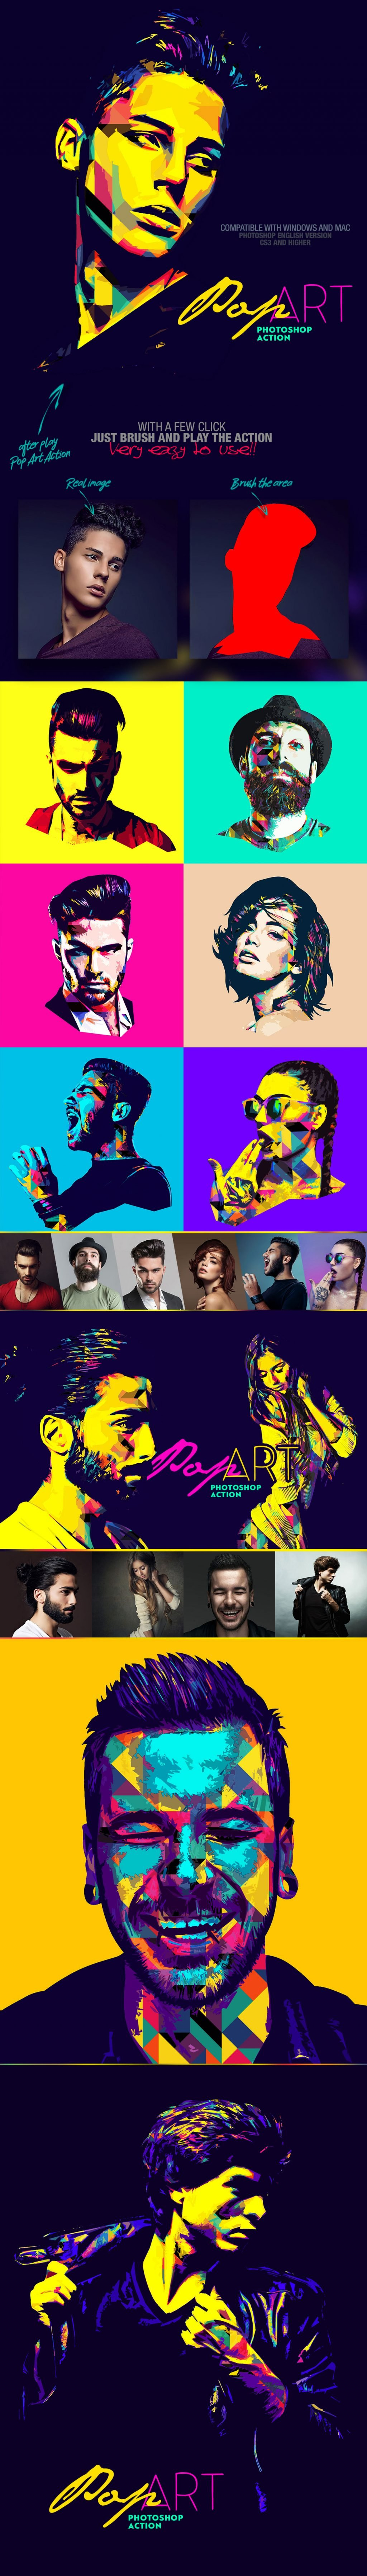 Photoshop Actions & Templates: Artistic Photo FX Bundle - Pop Art Photoshop Action design by AMORJESU